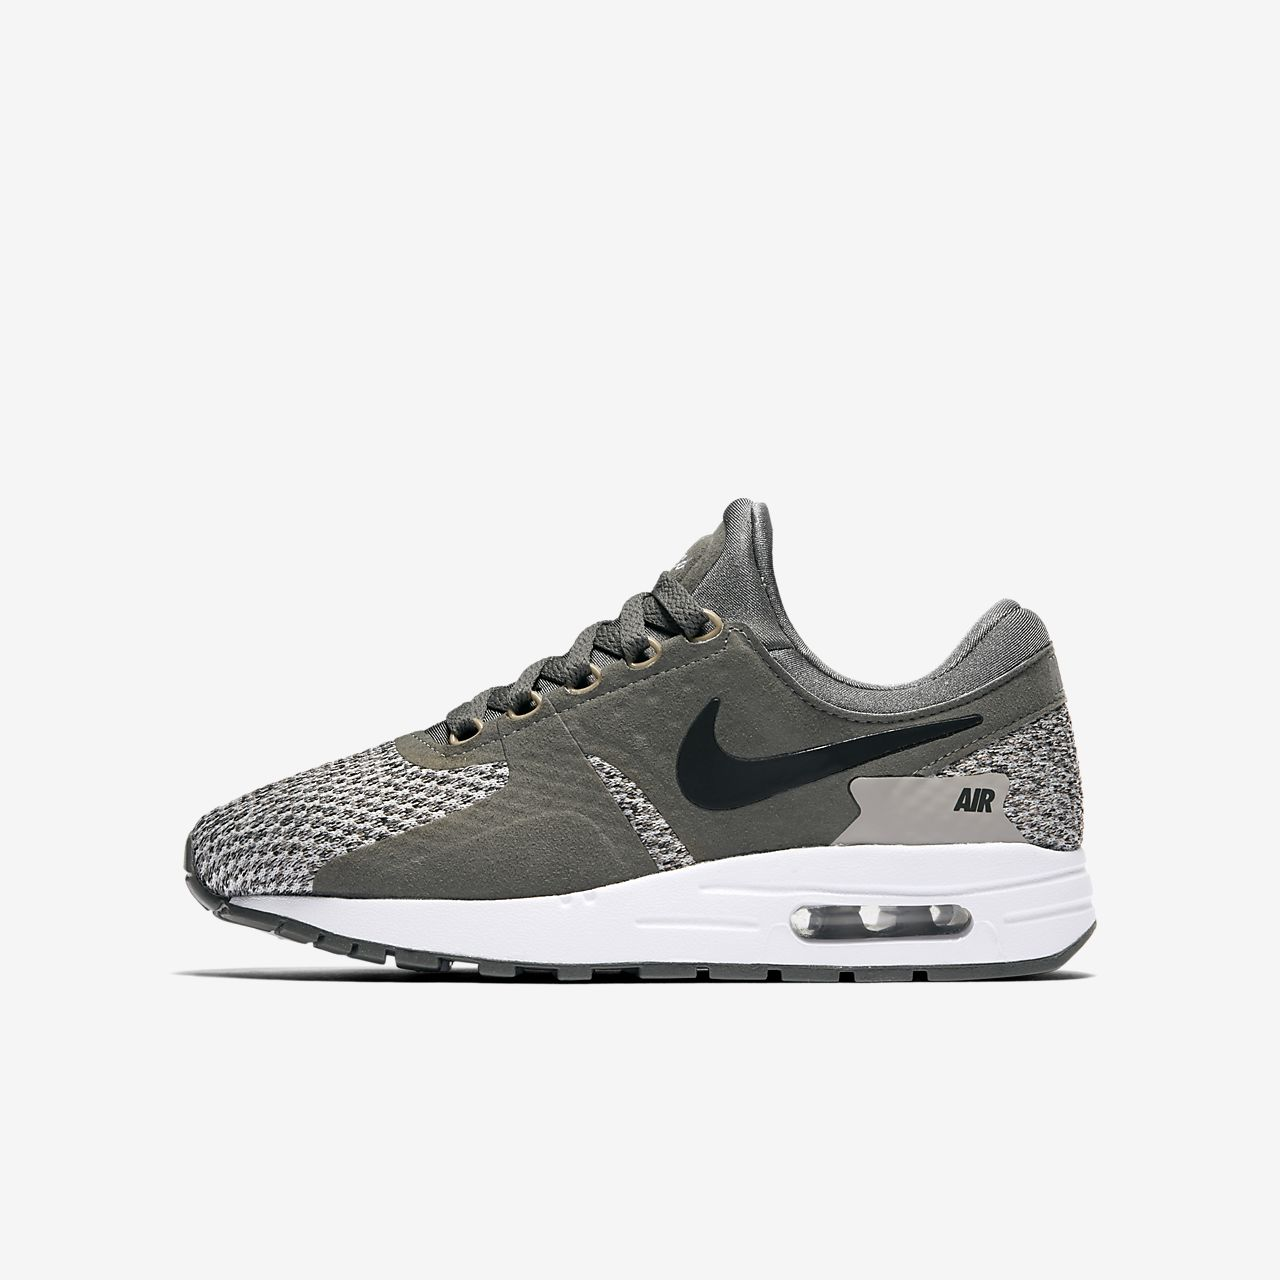 nike air max zero se shoe - 57% OFF 655534259a62